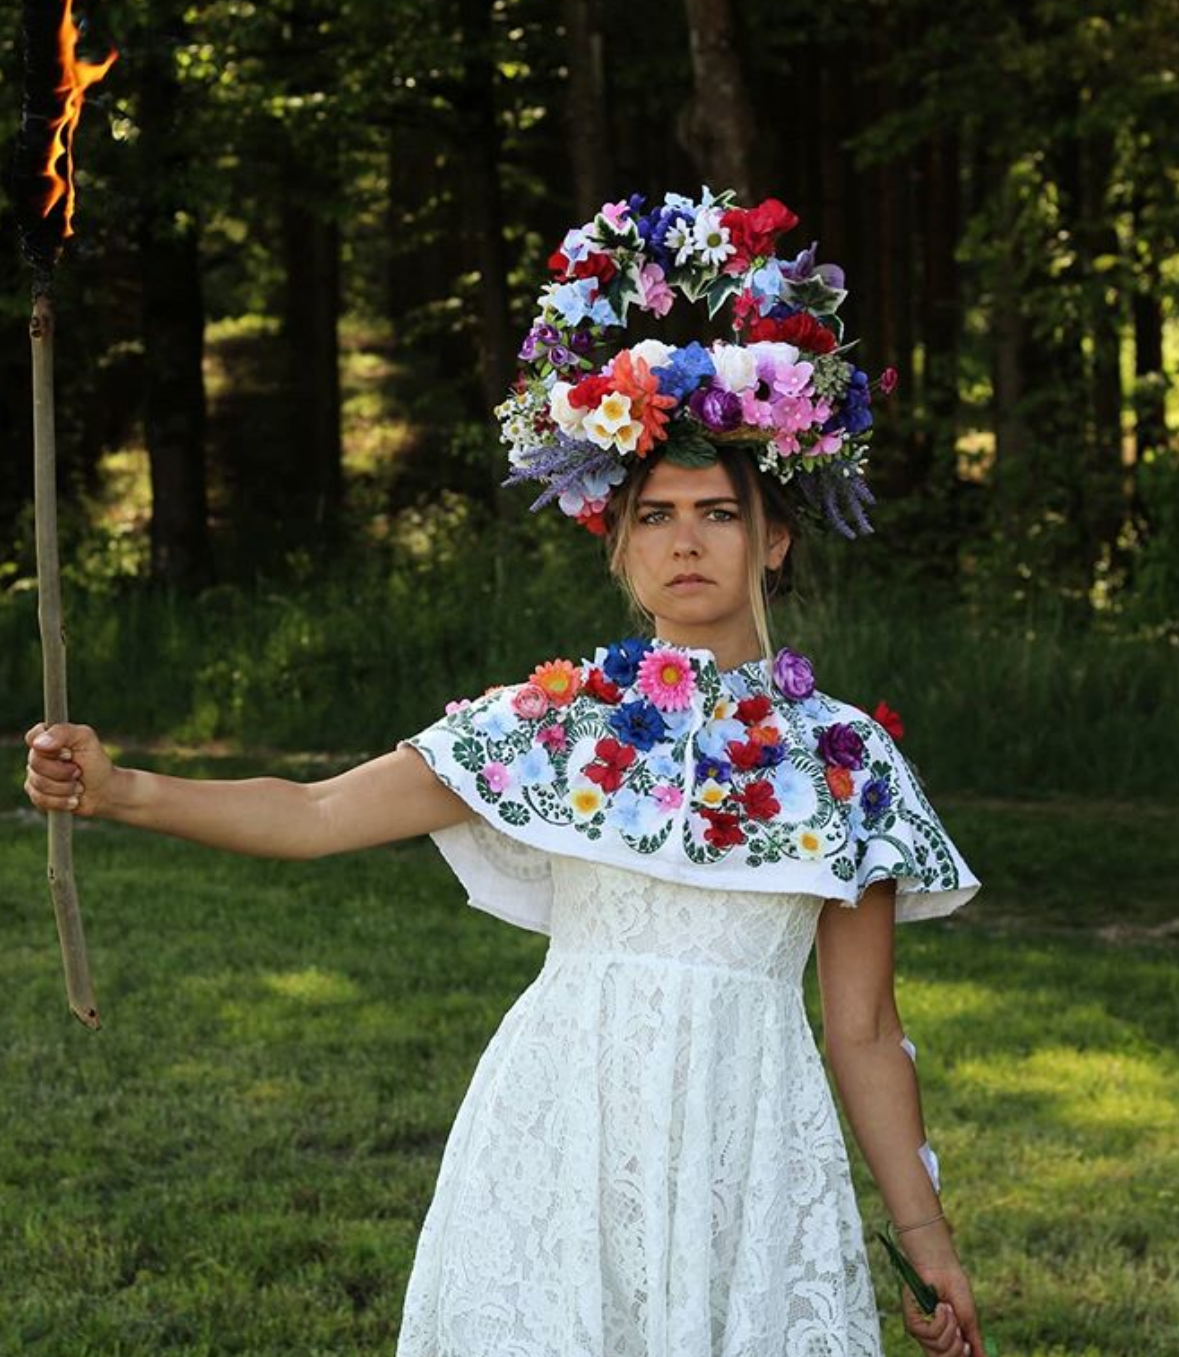 A girl burns a stick dressed in a flowery outfit.